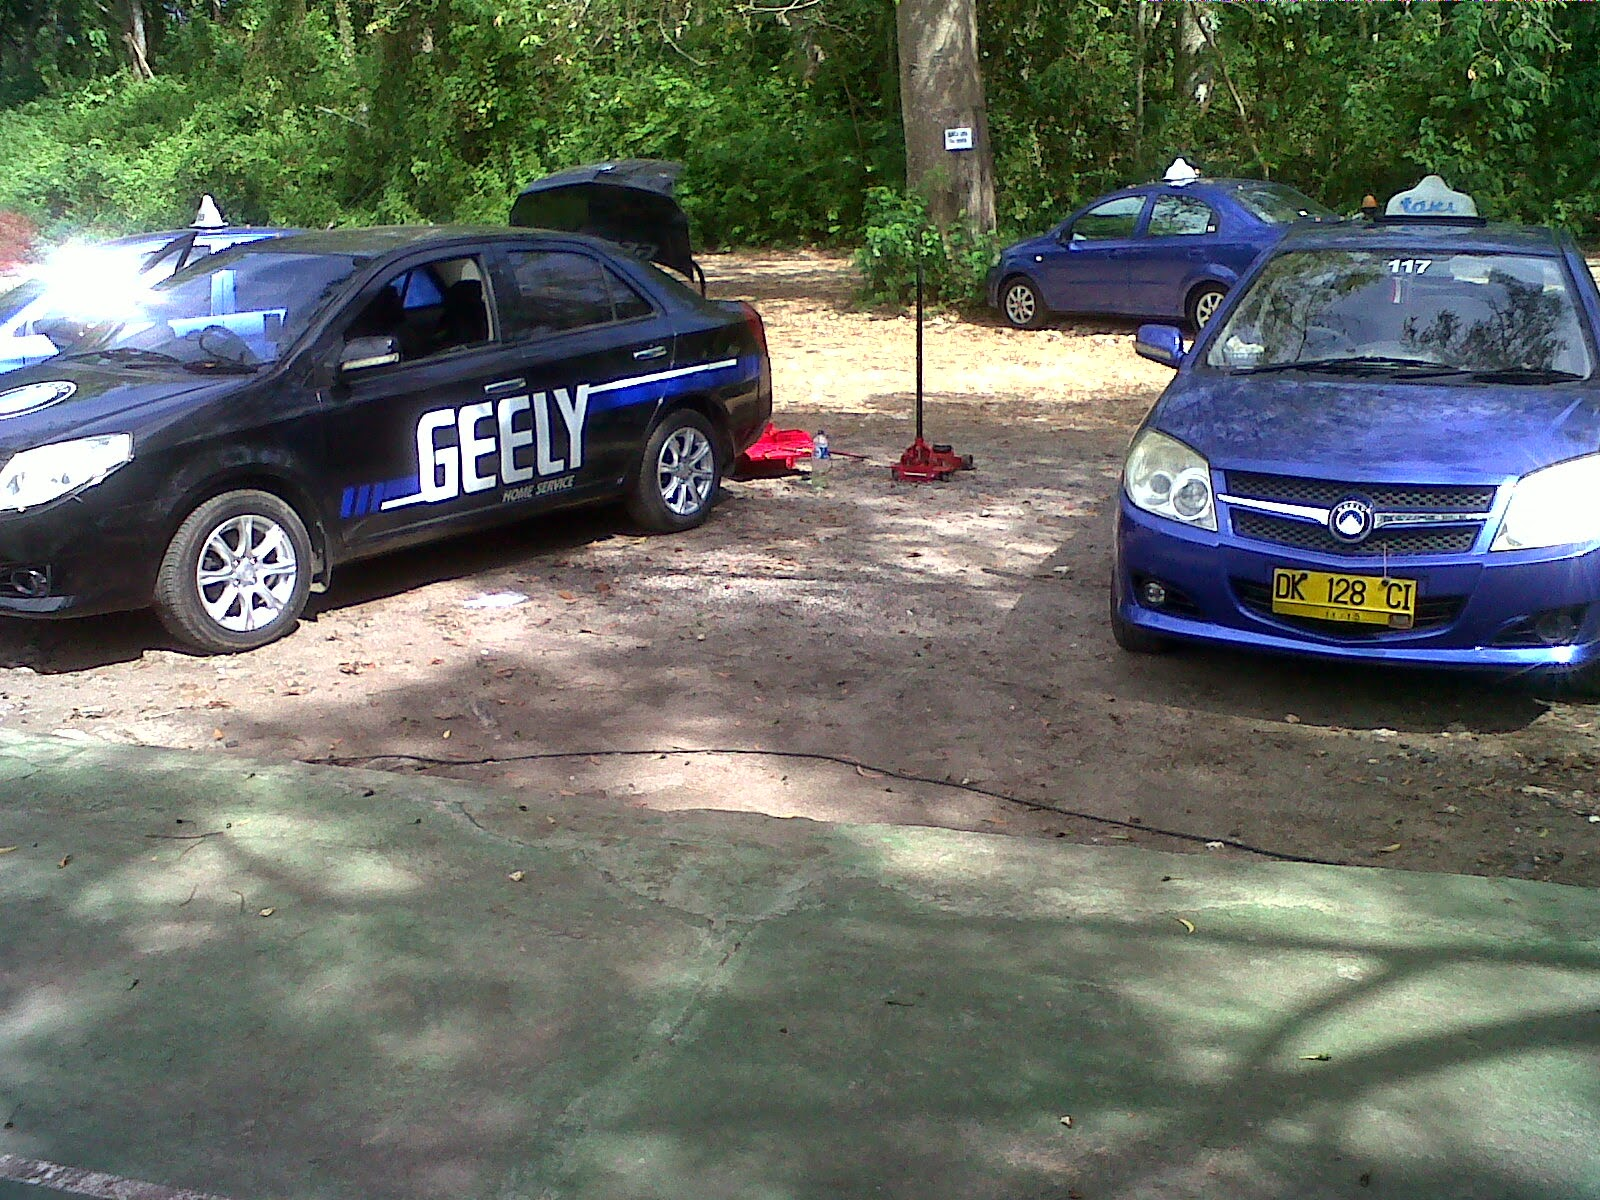 Geely Bali